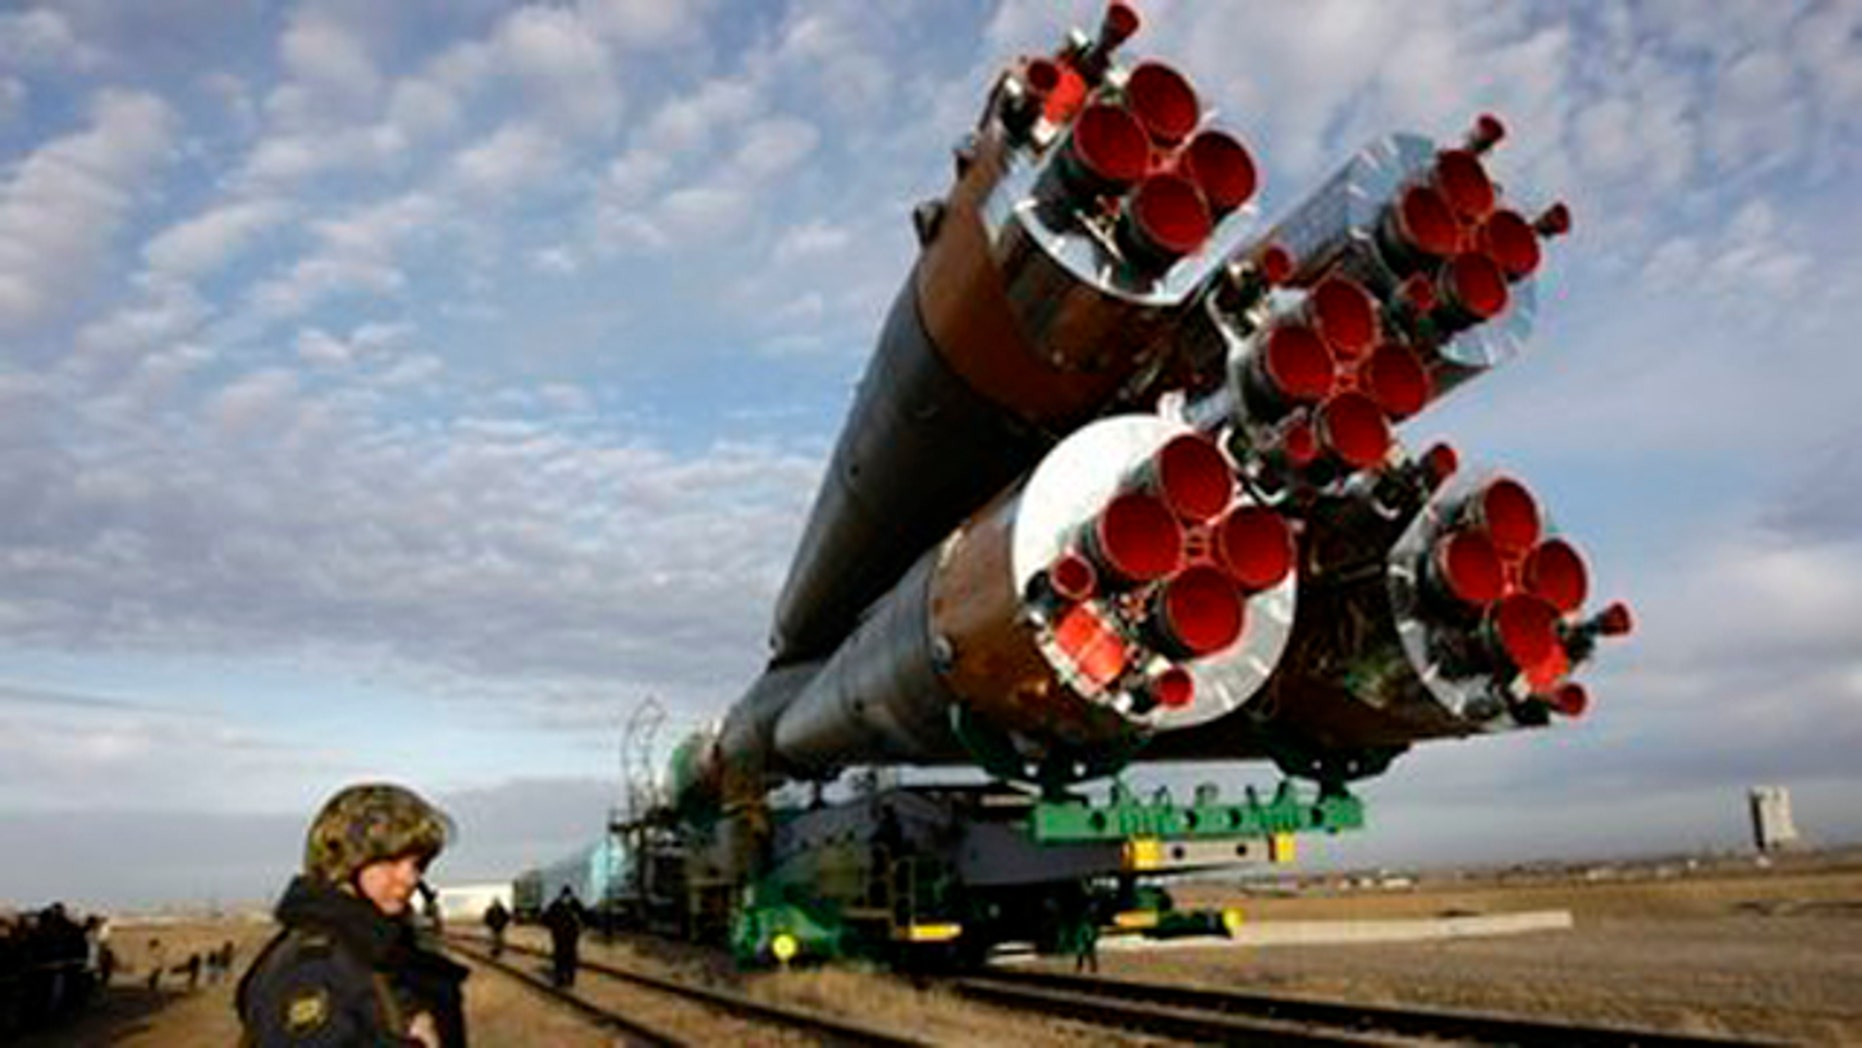 A Russian police officer guards the Russian Soyuz TMA-18 space ship getting transported from a hangar to the launch pad at the Russian leased Baikonur Cosmodrome, Kazakhstan.